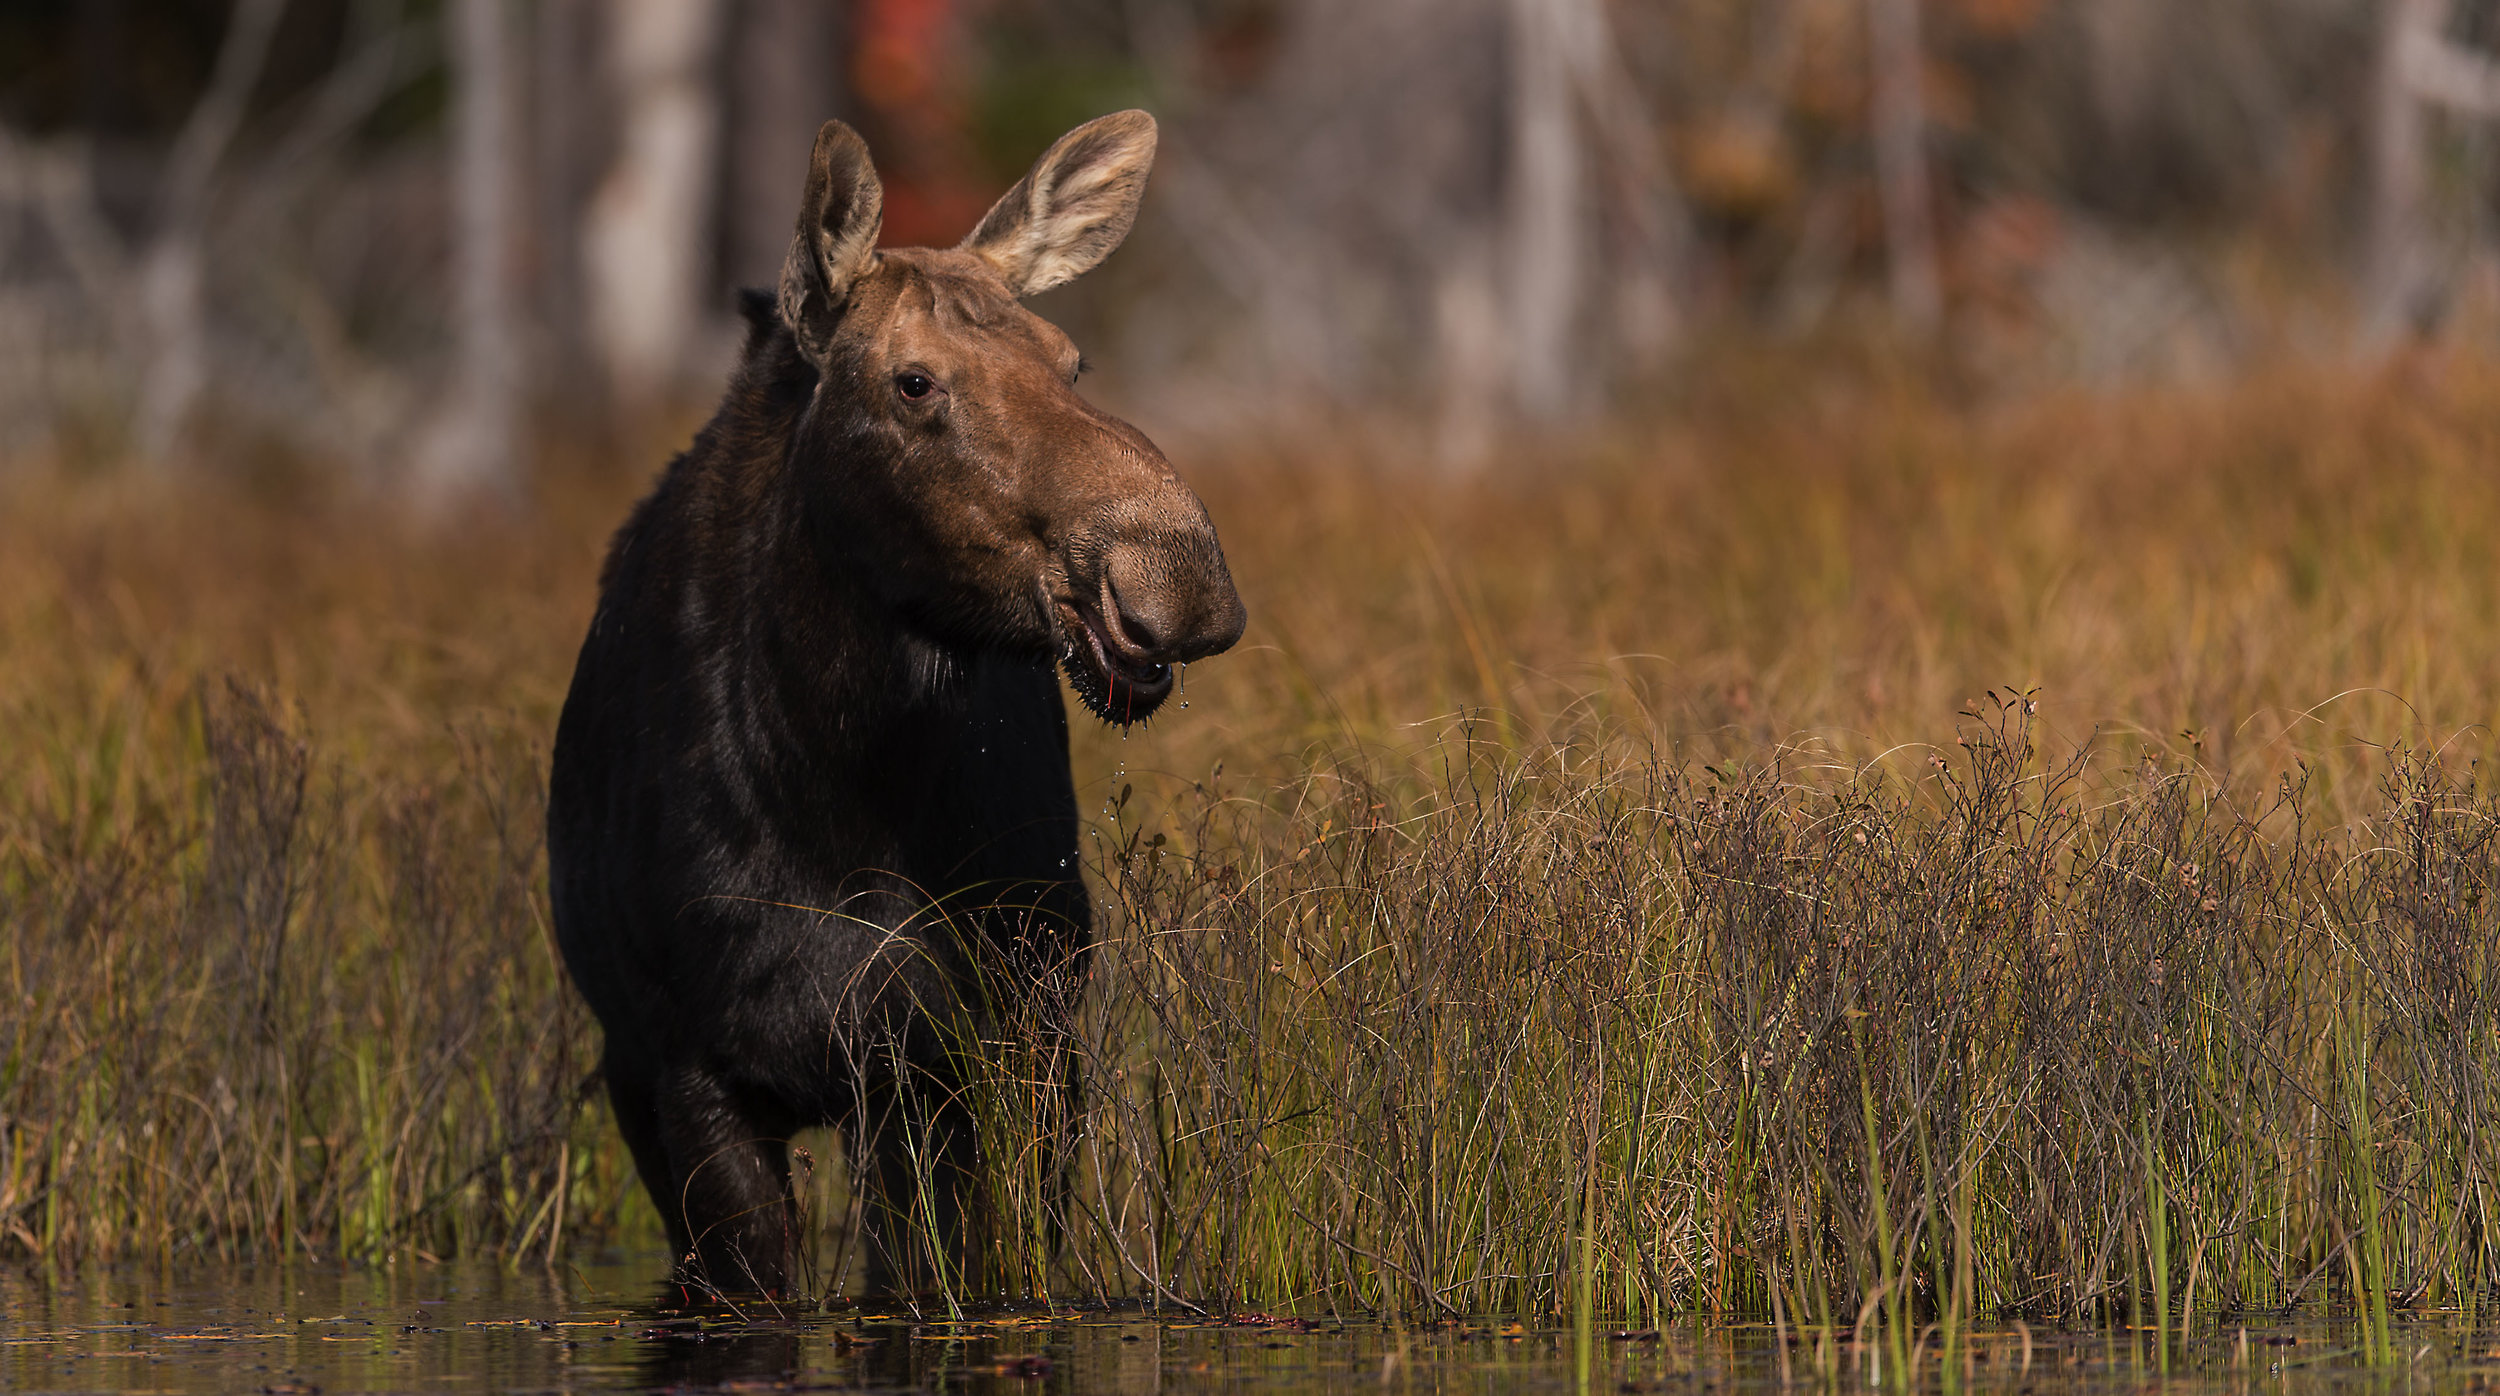 Moose image by Kevin K Pepper